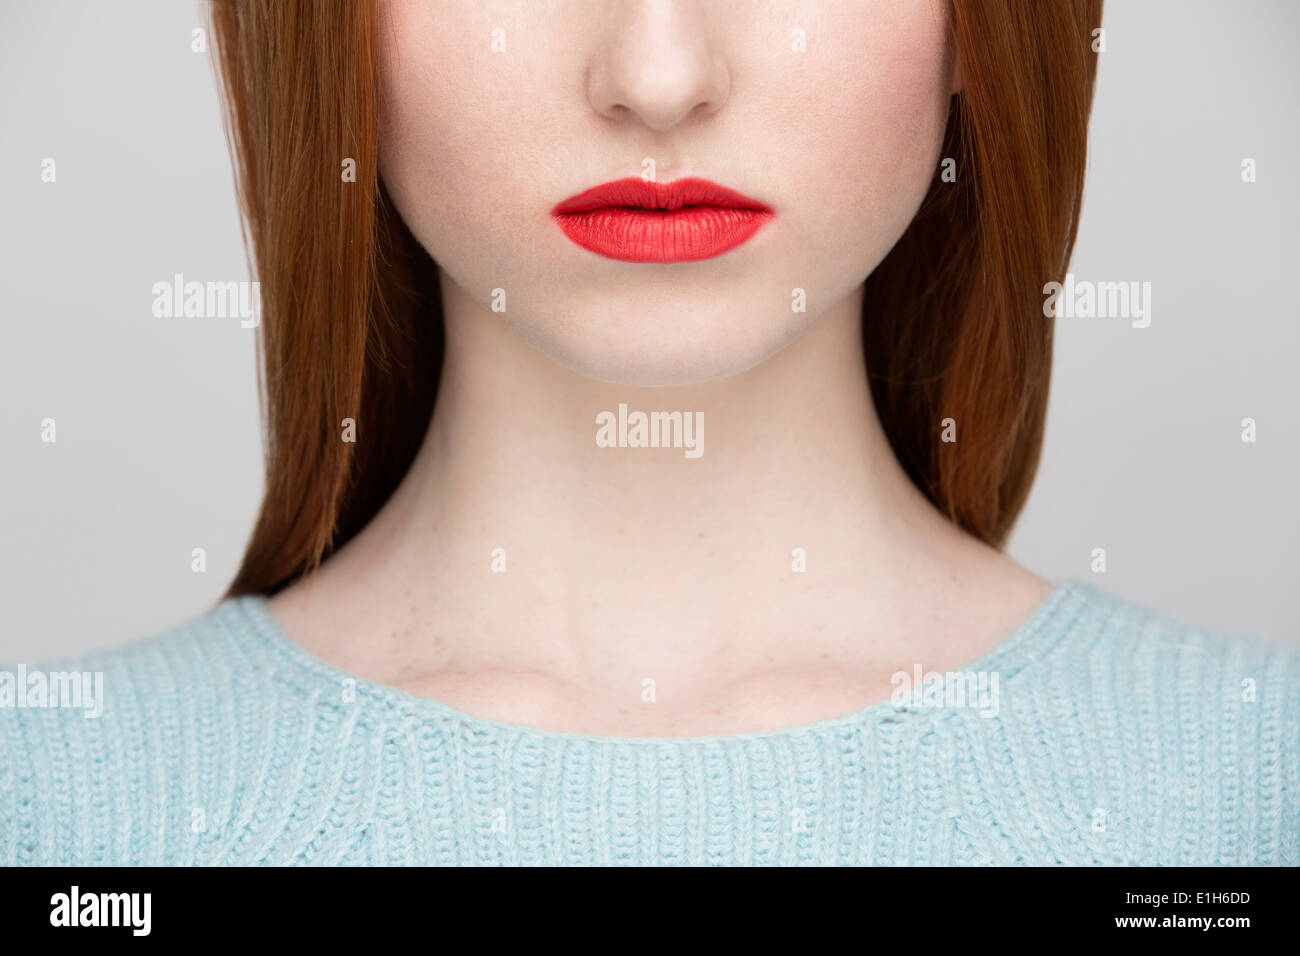 Cropped image of young woman's lips - Stock Image